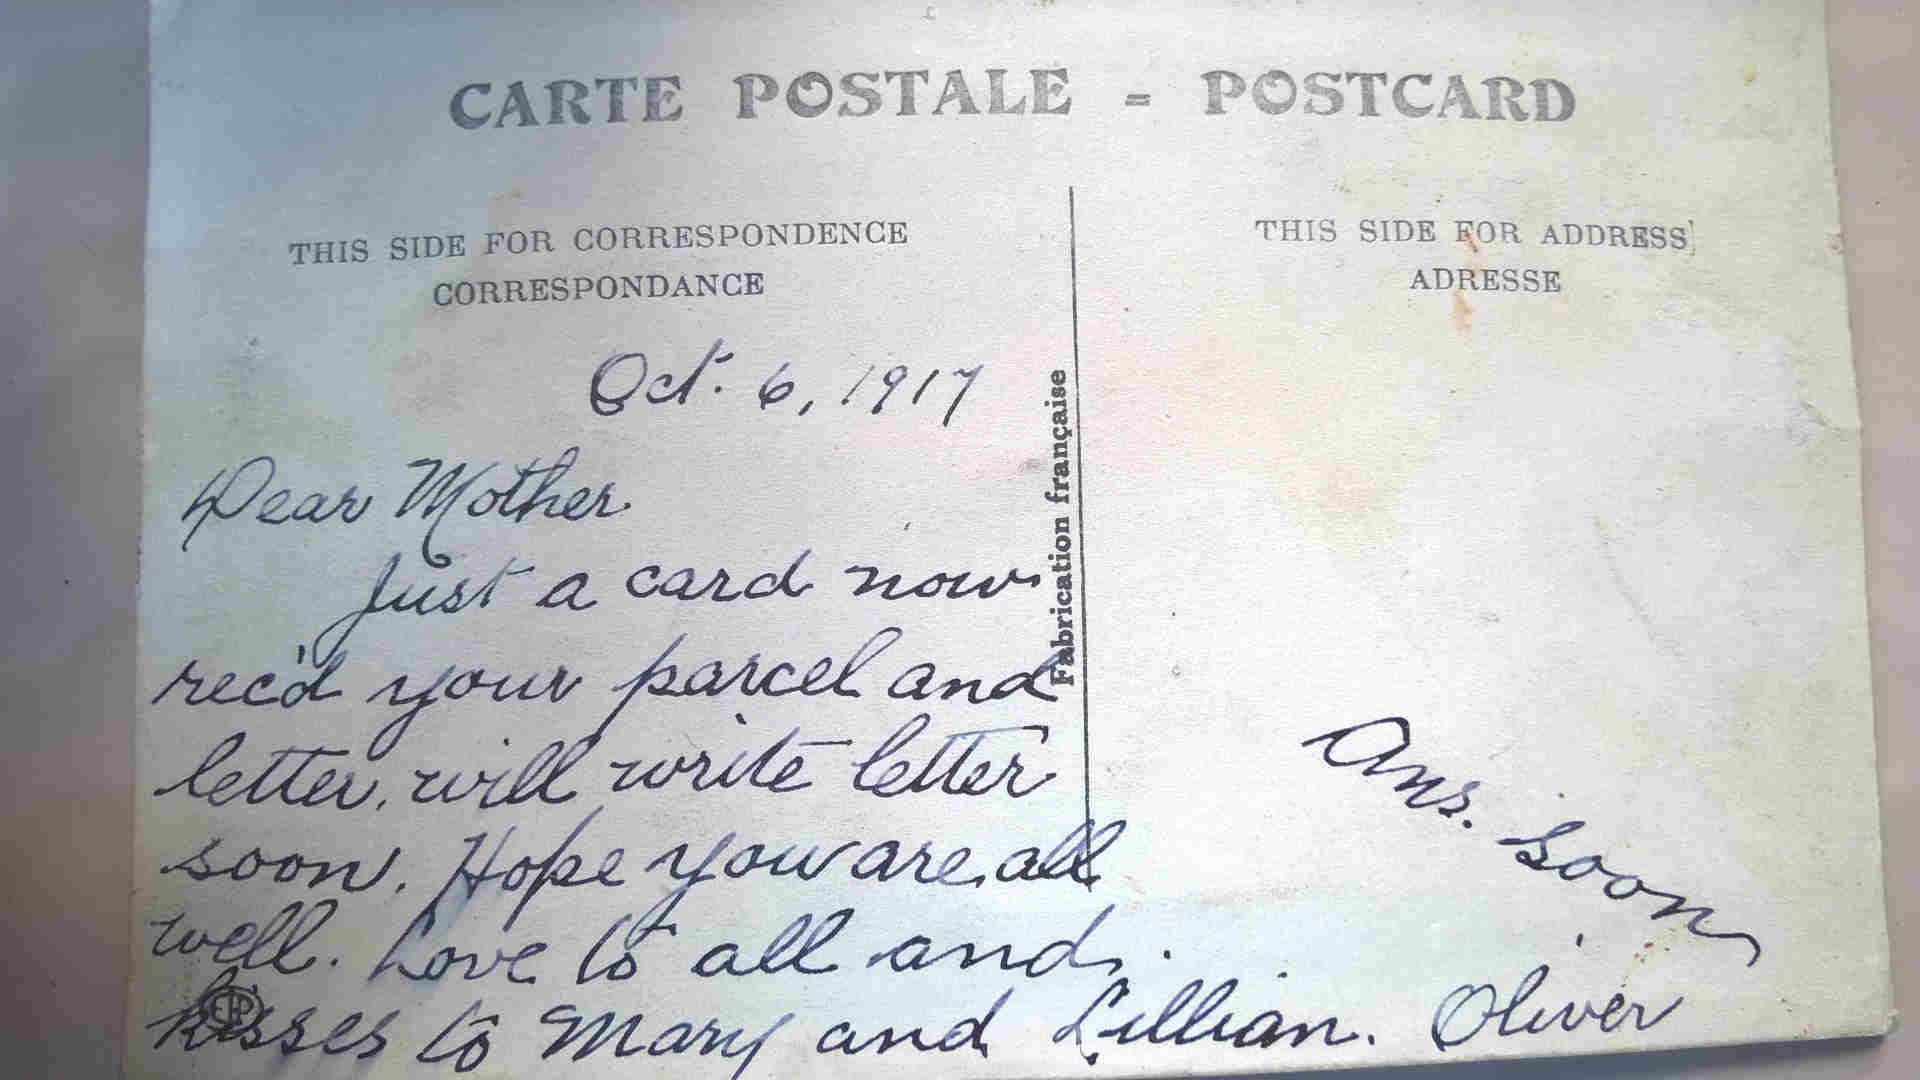 Post Card– Post card home to family one month before his death.